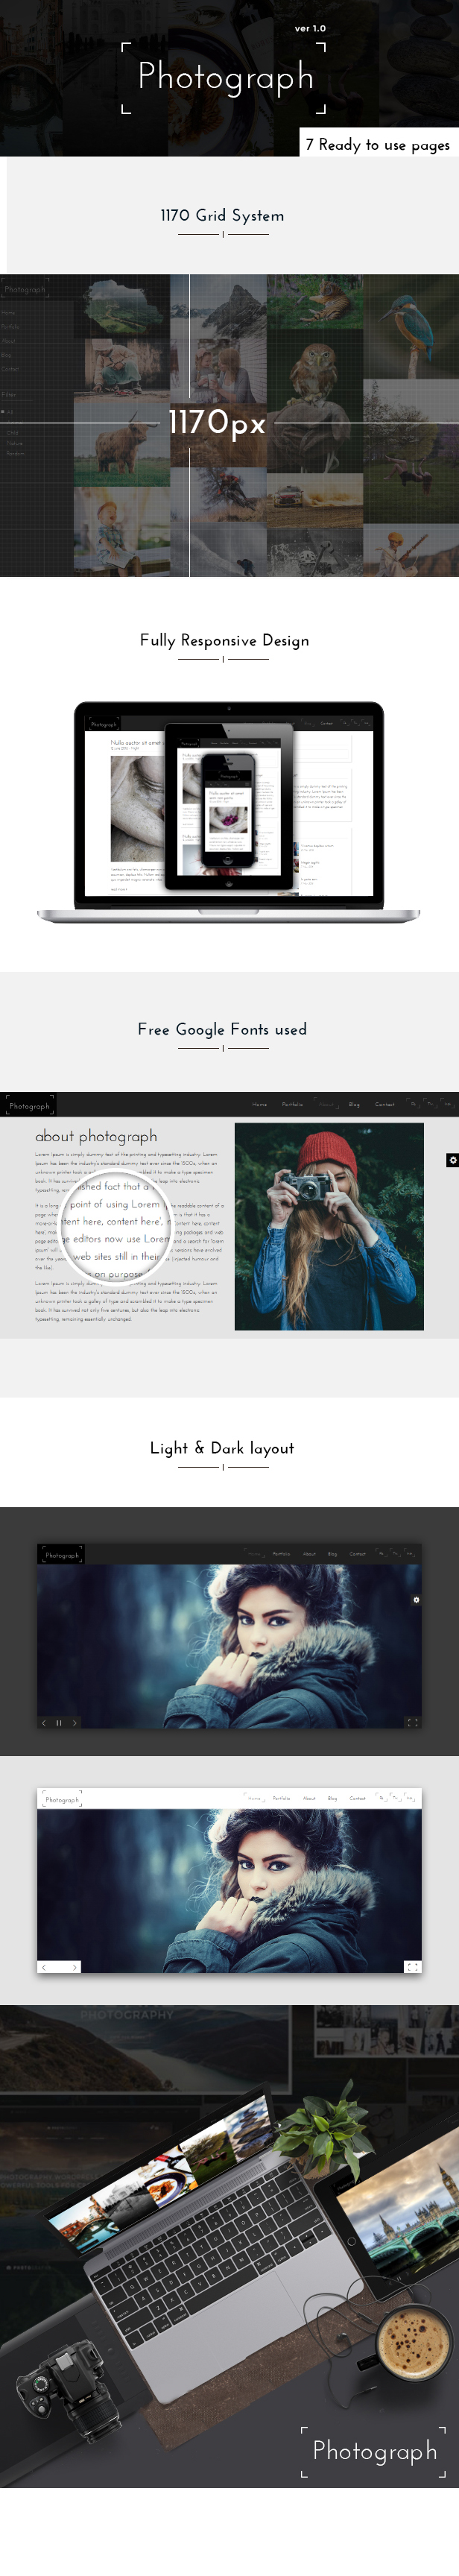 Photograph - Awesome Photography Portfolio Template by venbradshaw